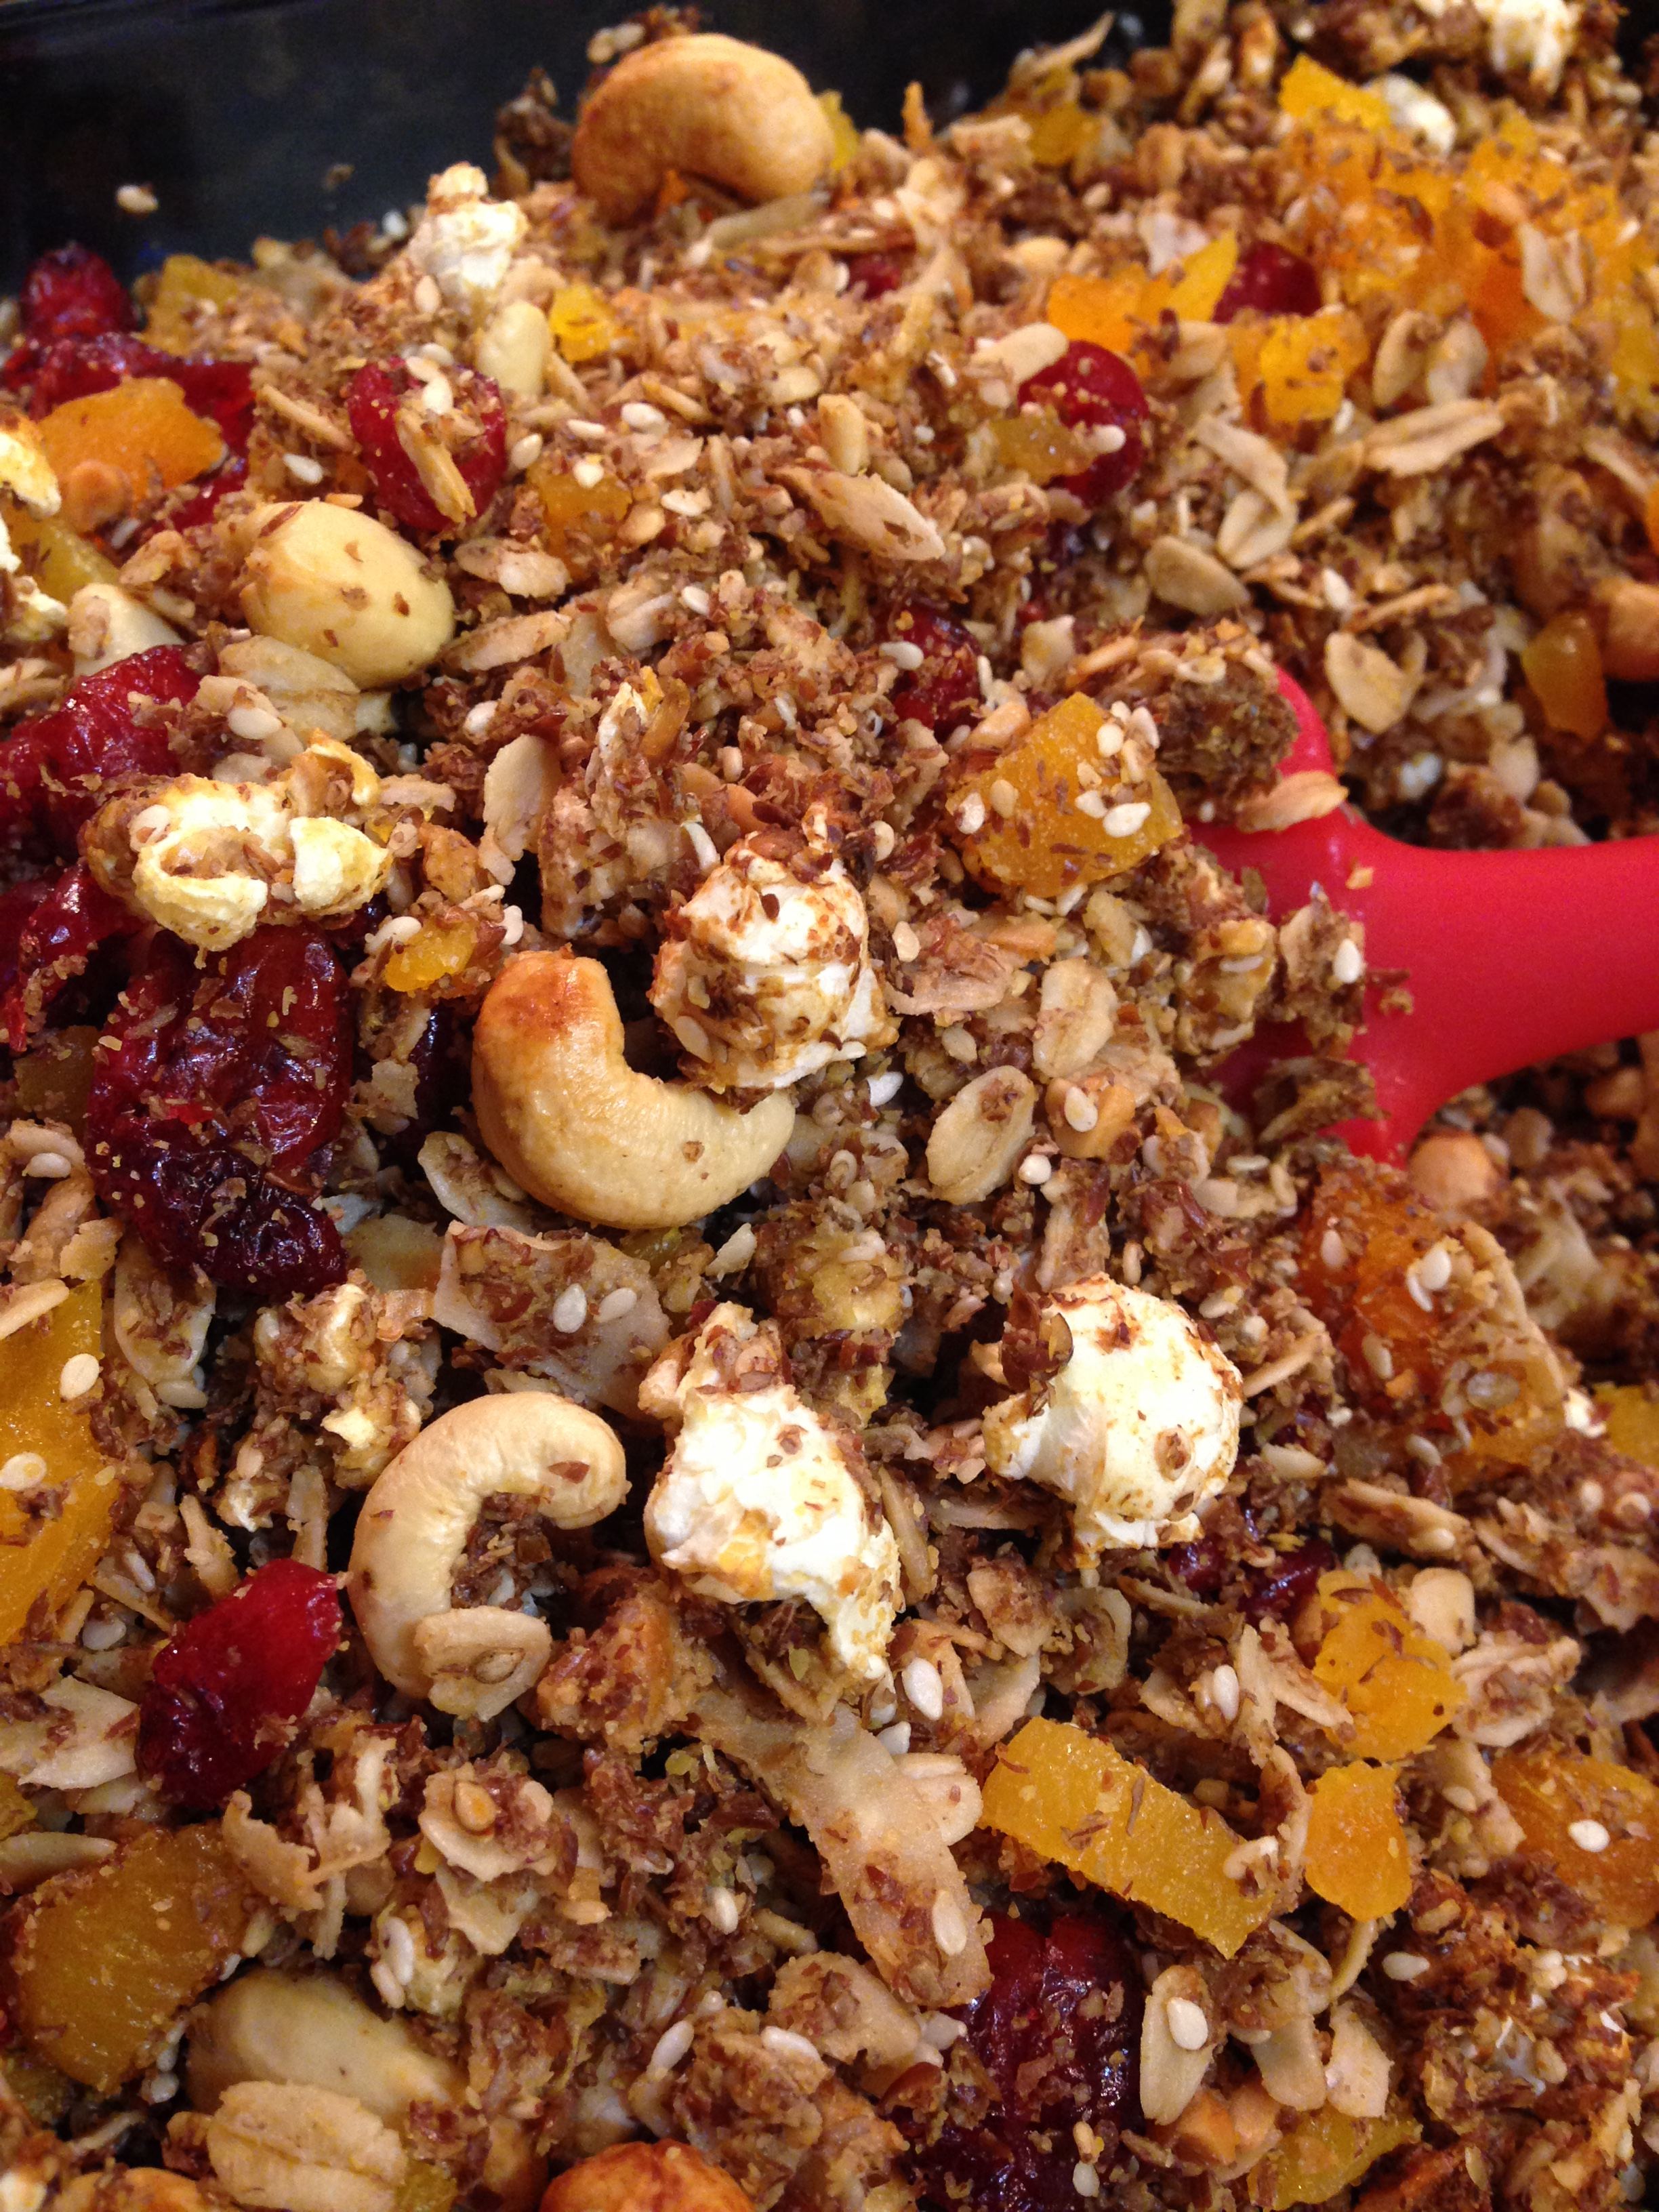 Popcorn Oat and Coconut Granola with Fruit- Gluten and Dairy Free!